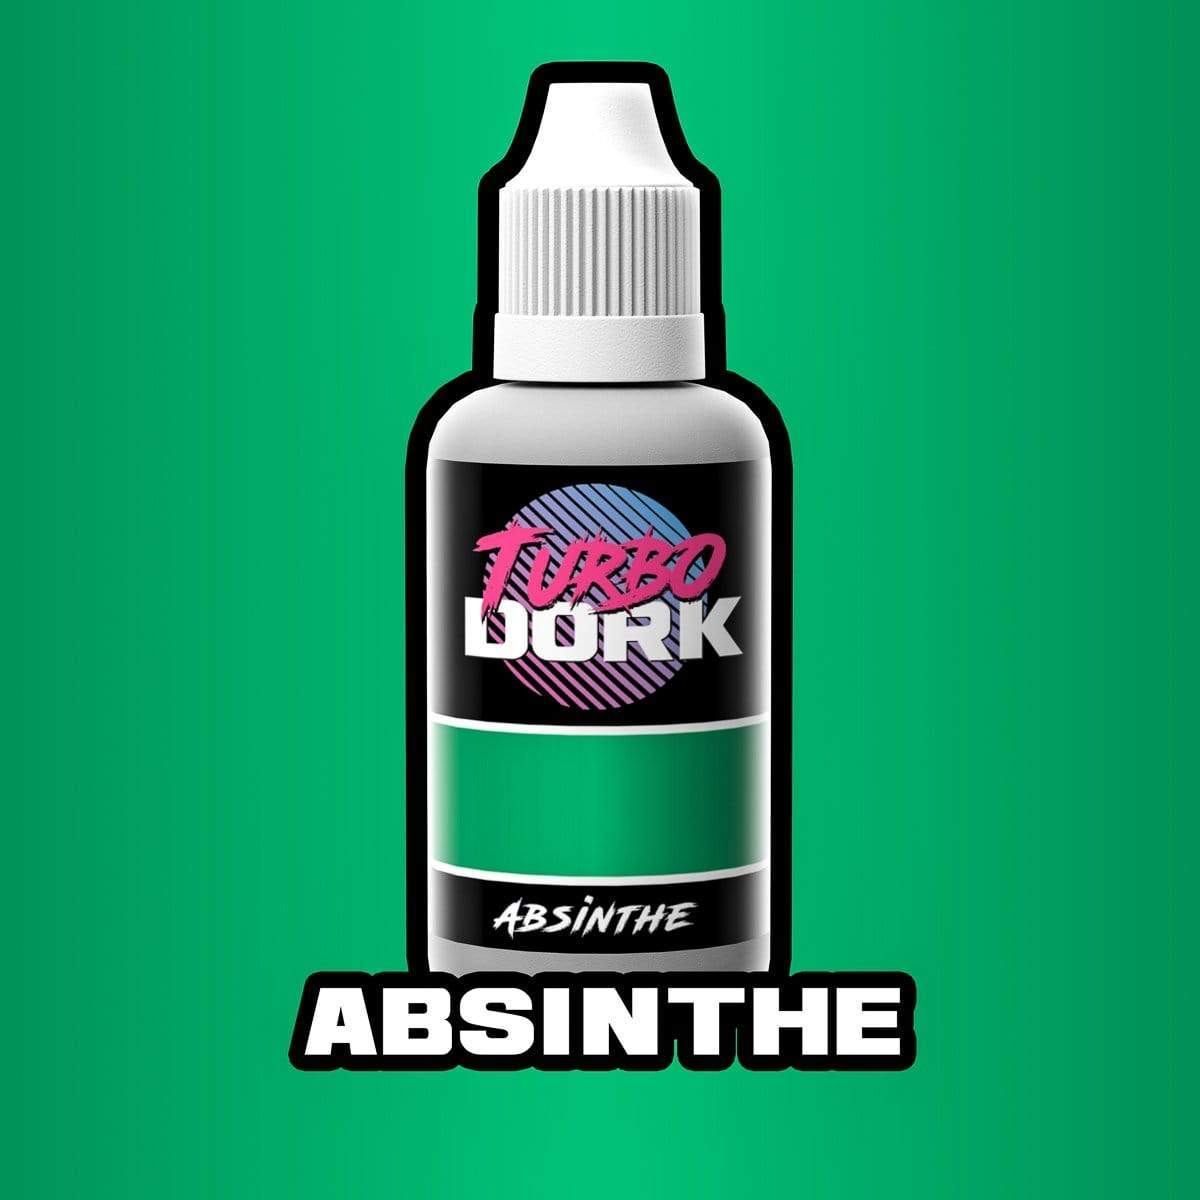 Turbo Dork 20ml Bottle Absinthe Metallic Acrylic Paint